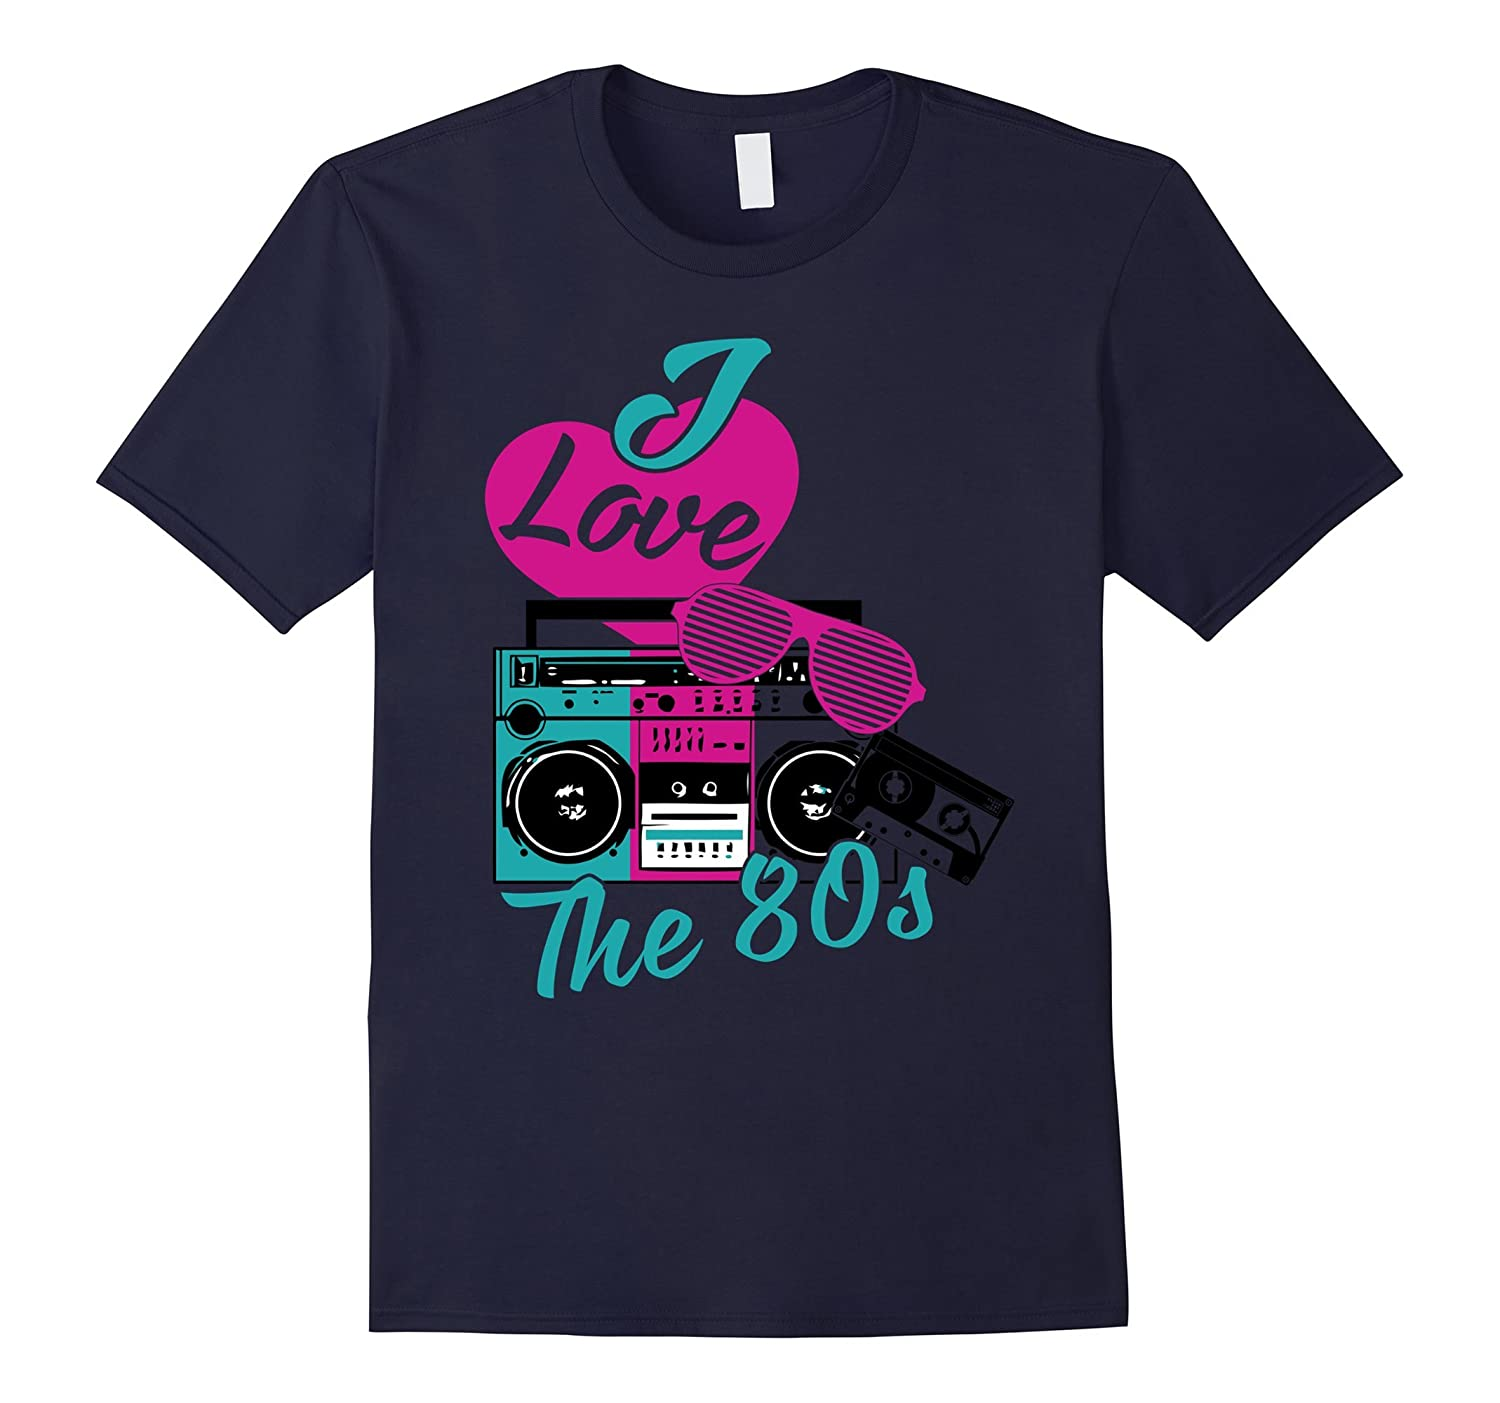 I Love Heart The 80s Flashback Pop Culture 1980s T-shirt-TD